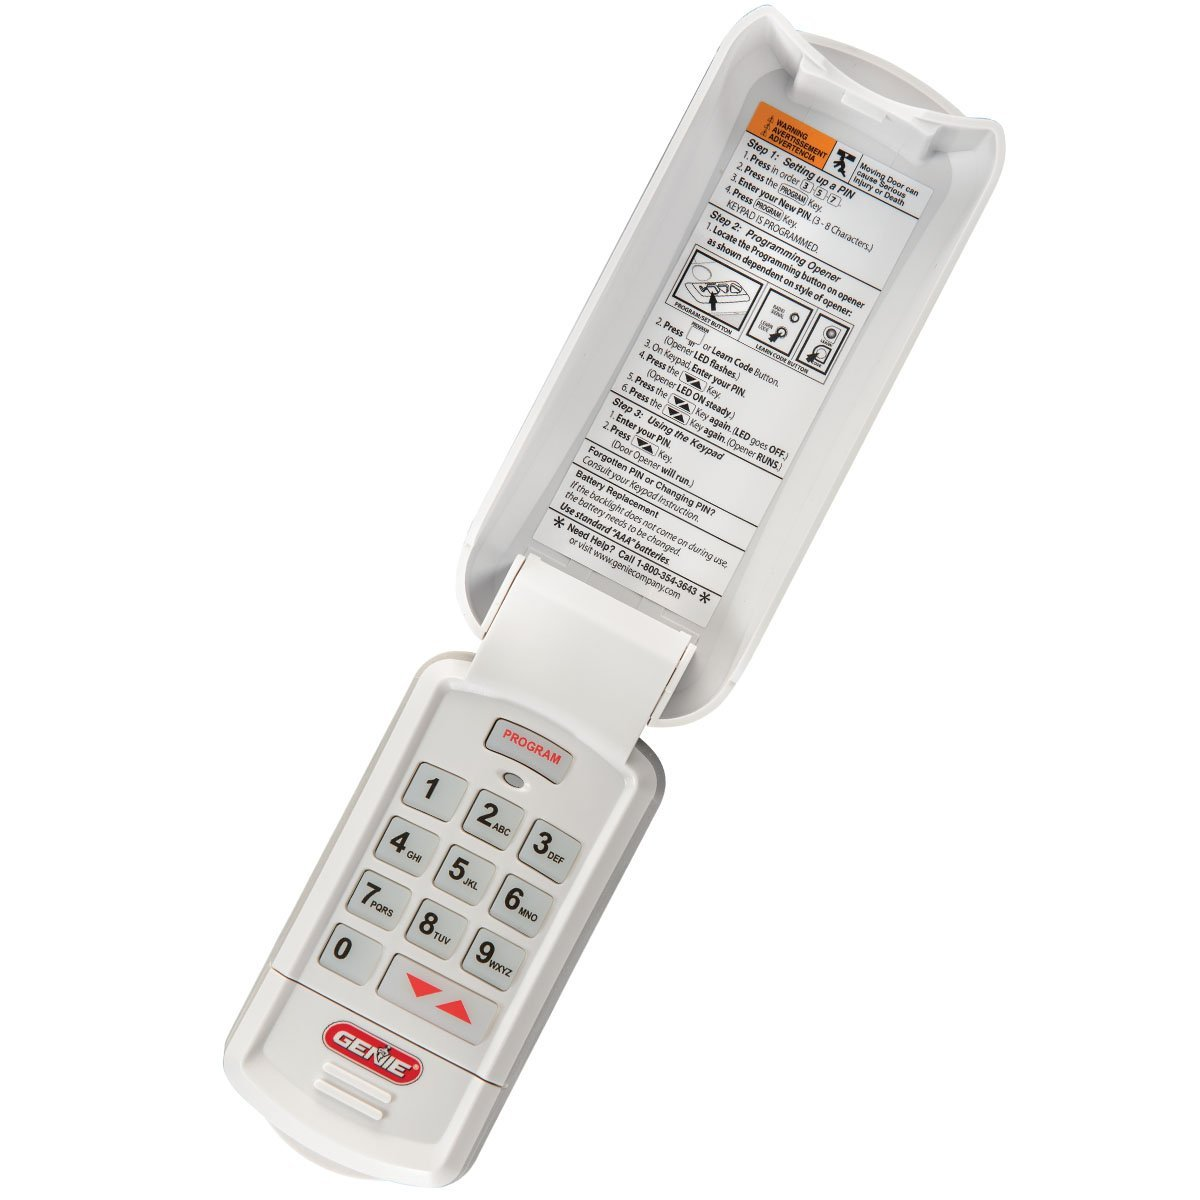 New Genie Remote Control Intellicode Wireless Keypad